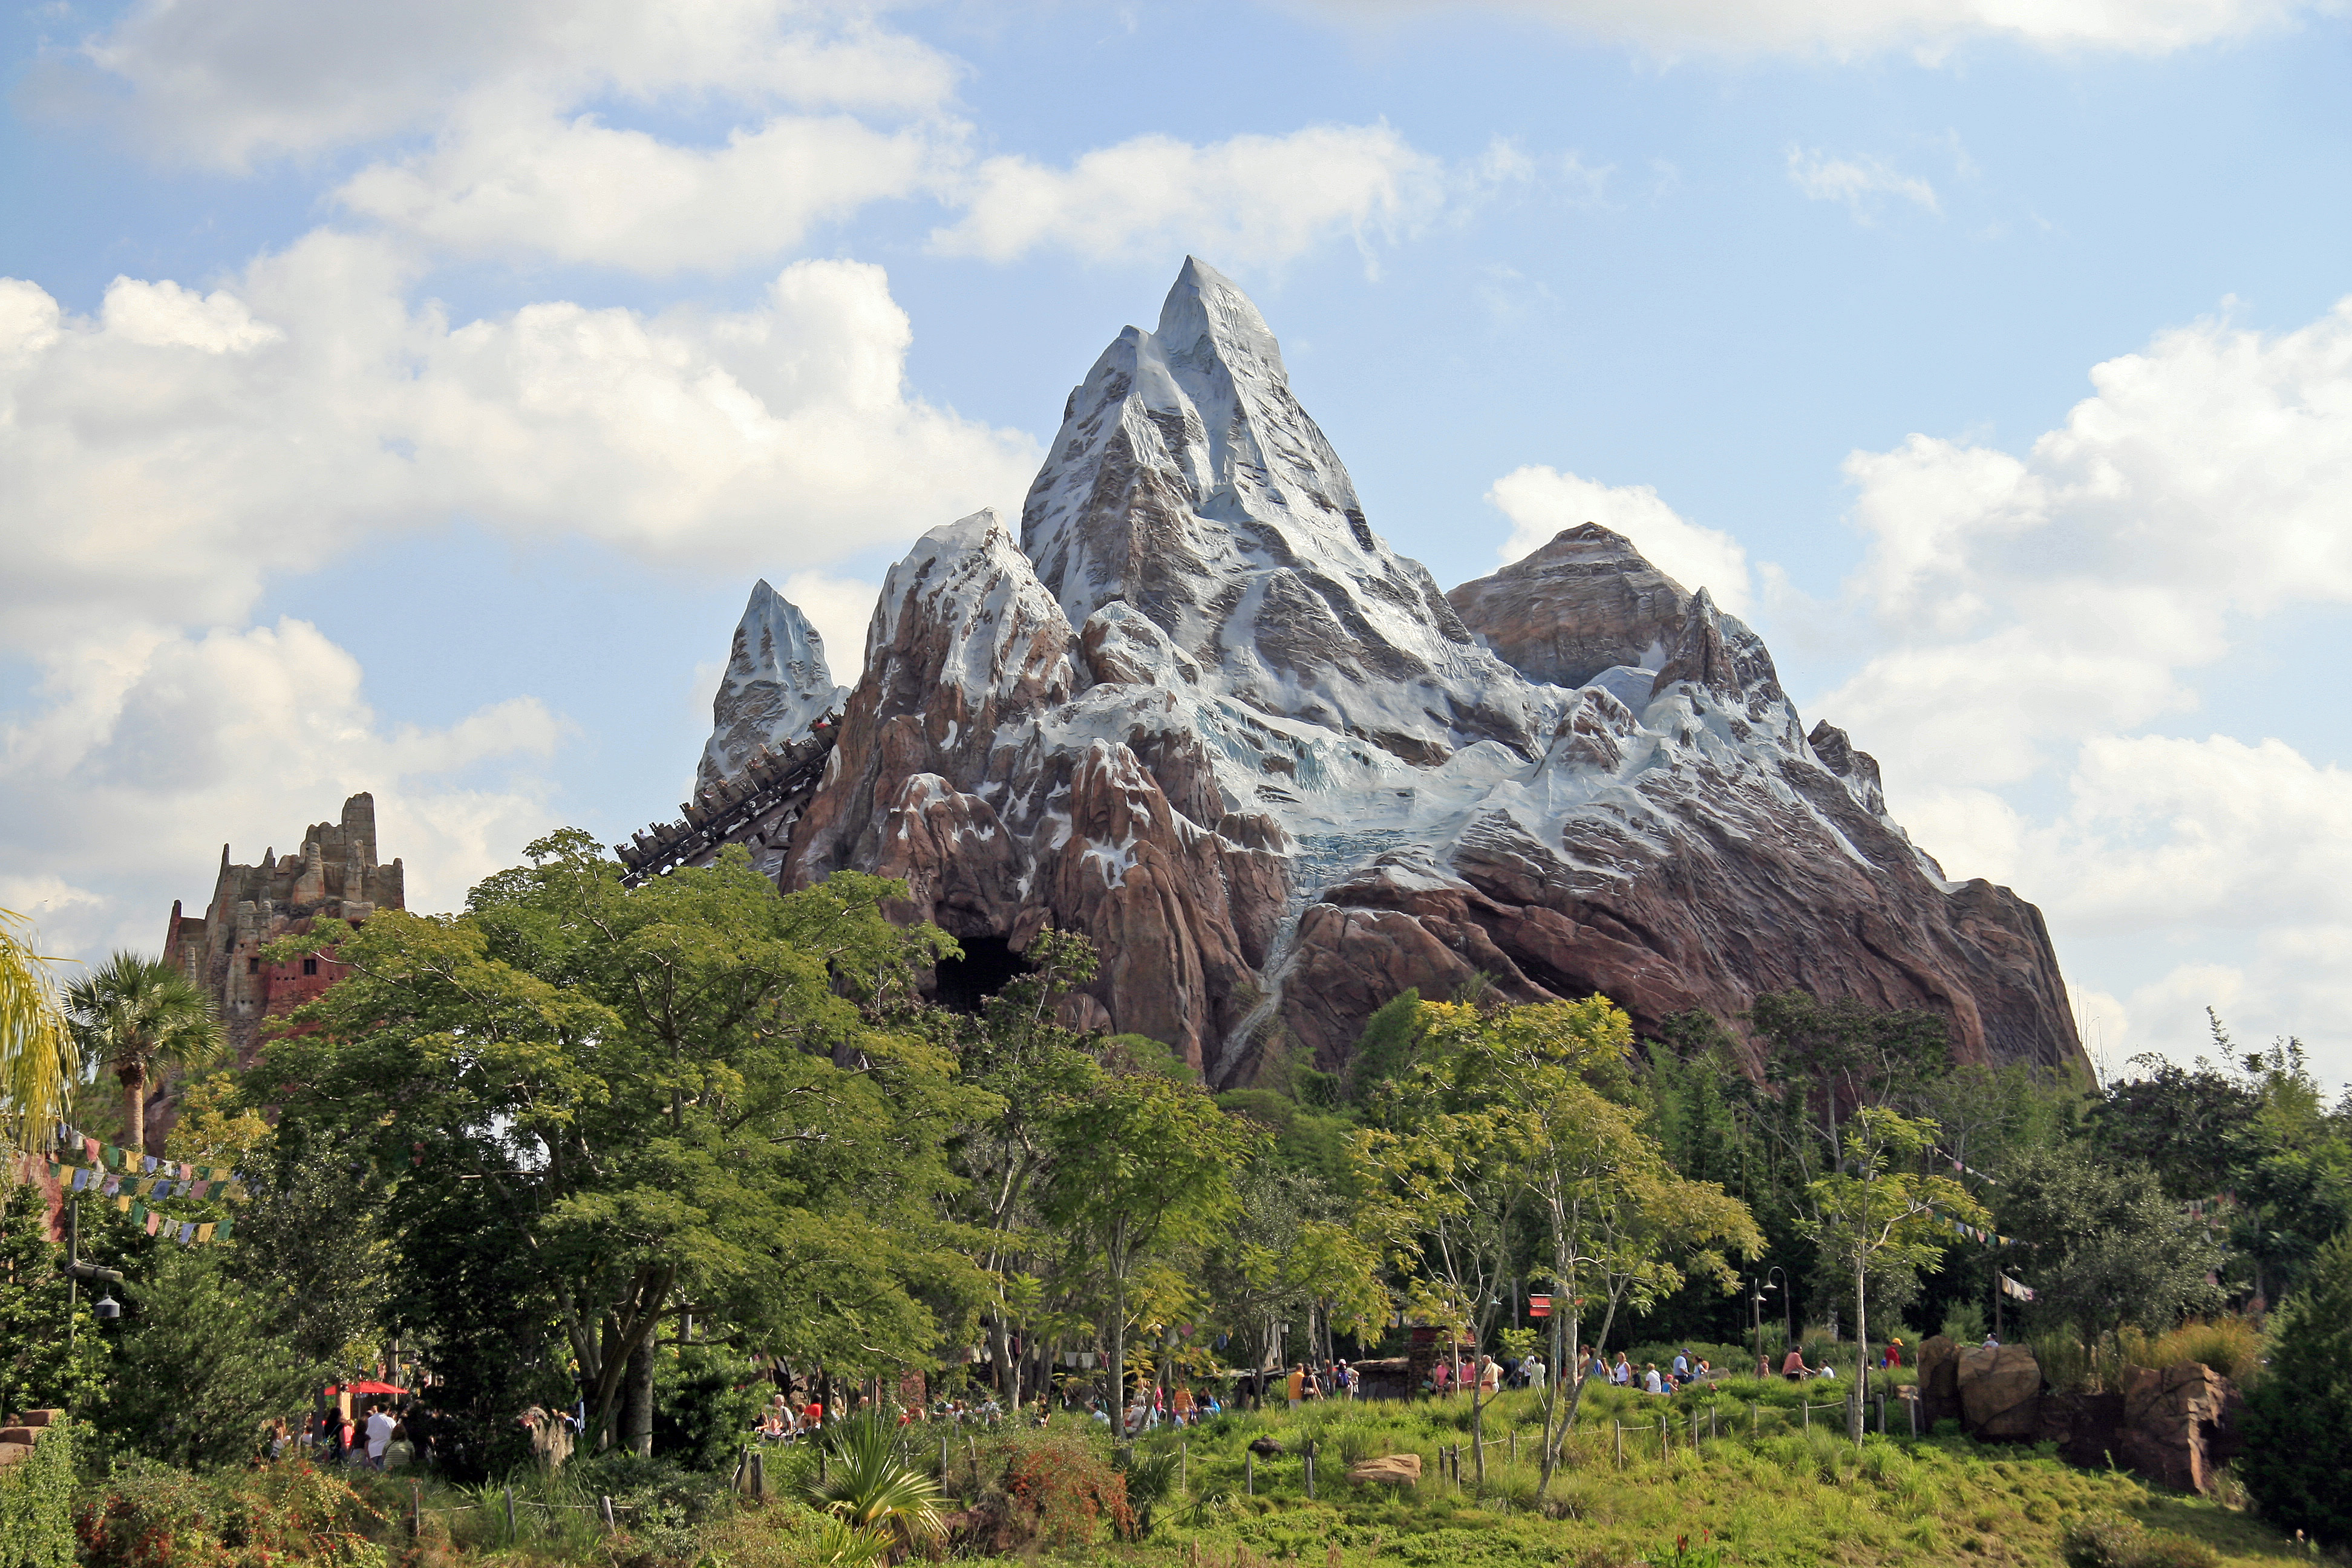 Expedition Everest My Verson | WDWMAGIC - Unofficial Walt Disney ...